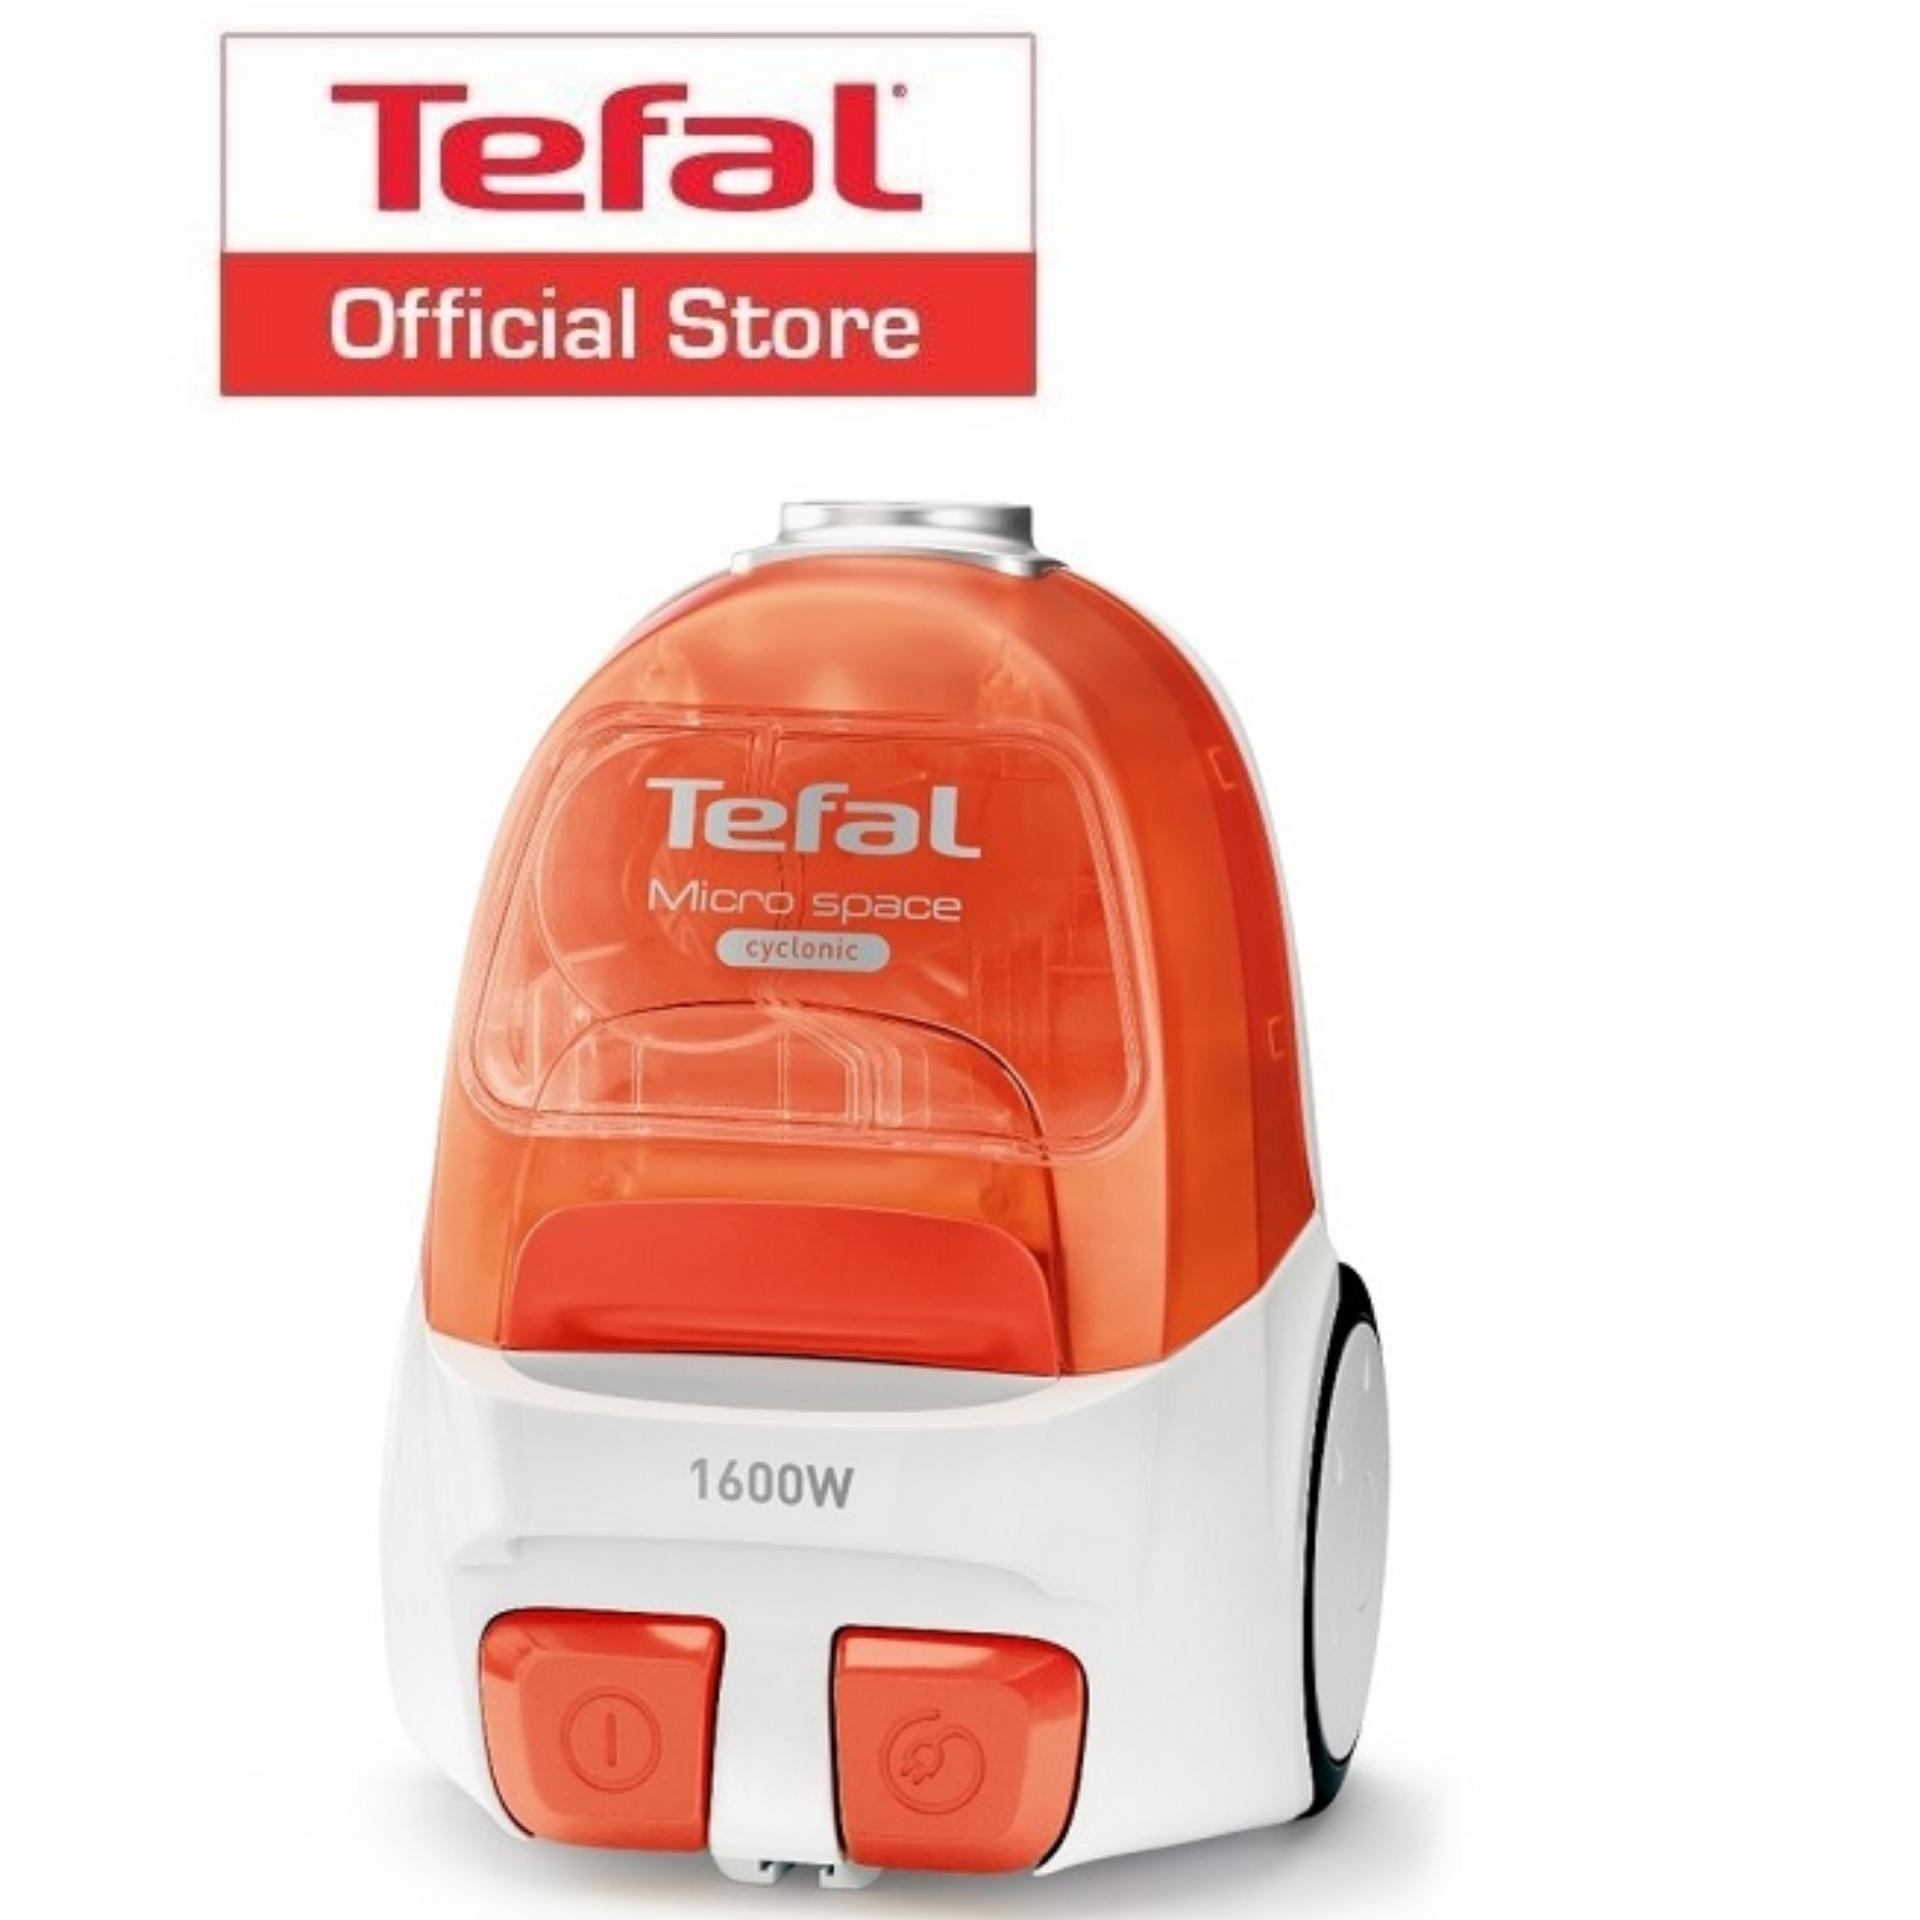 Compare Tefal Micro Space Cyclonic Bagless Vacuum Cleaner Tw3233